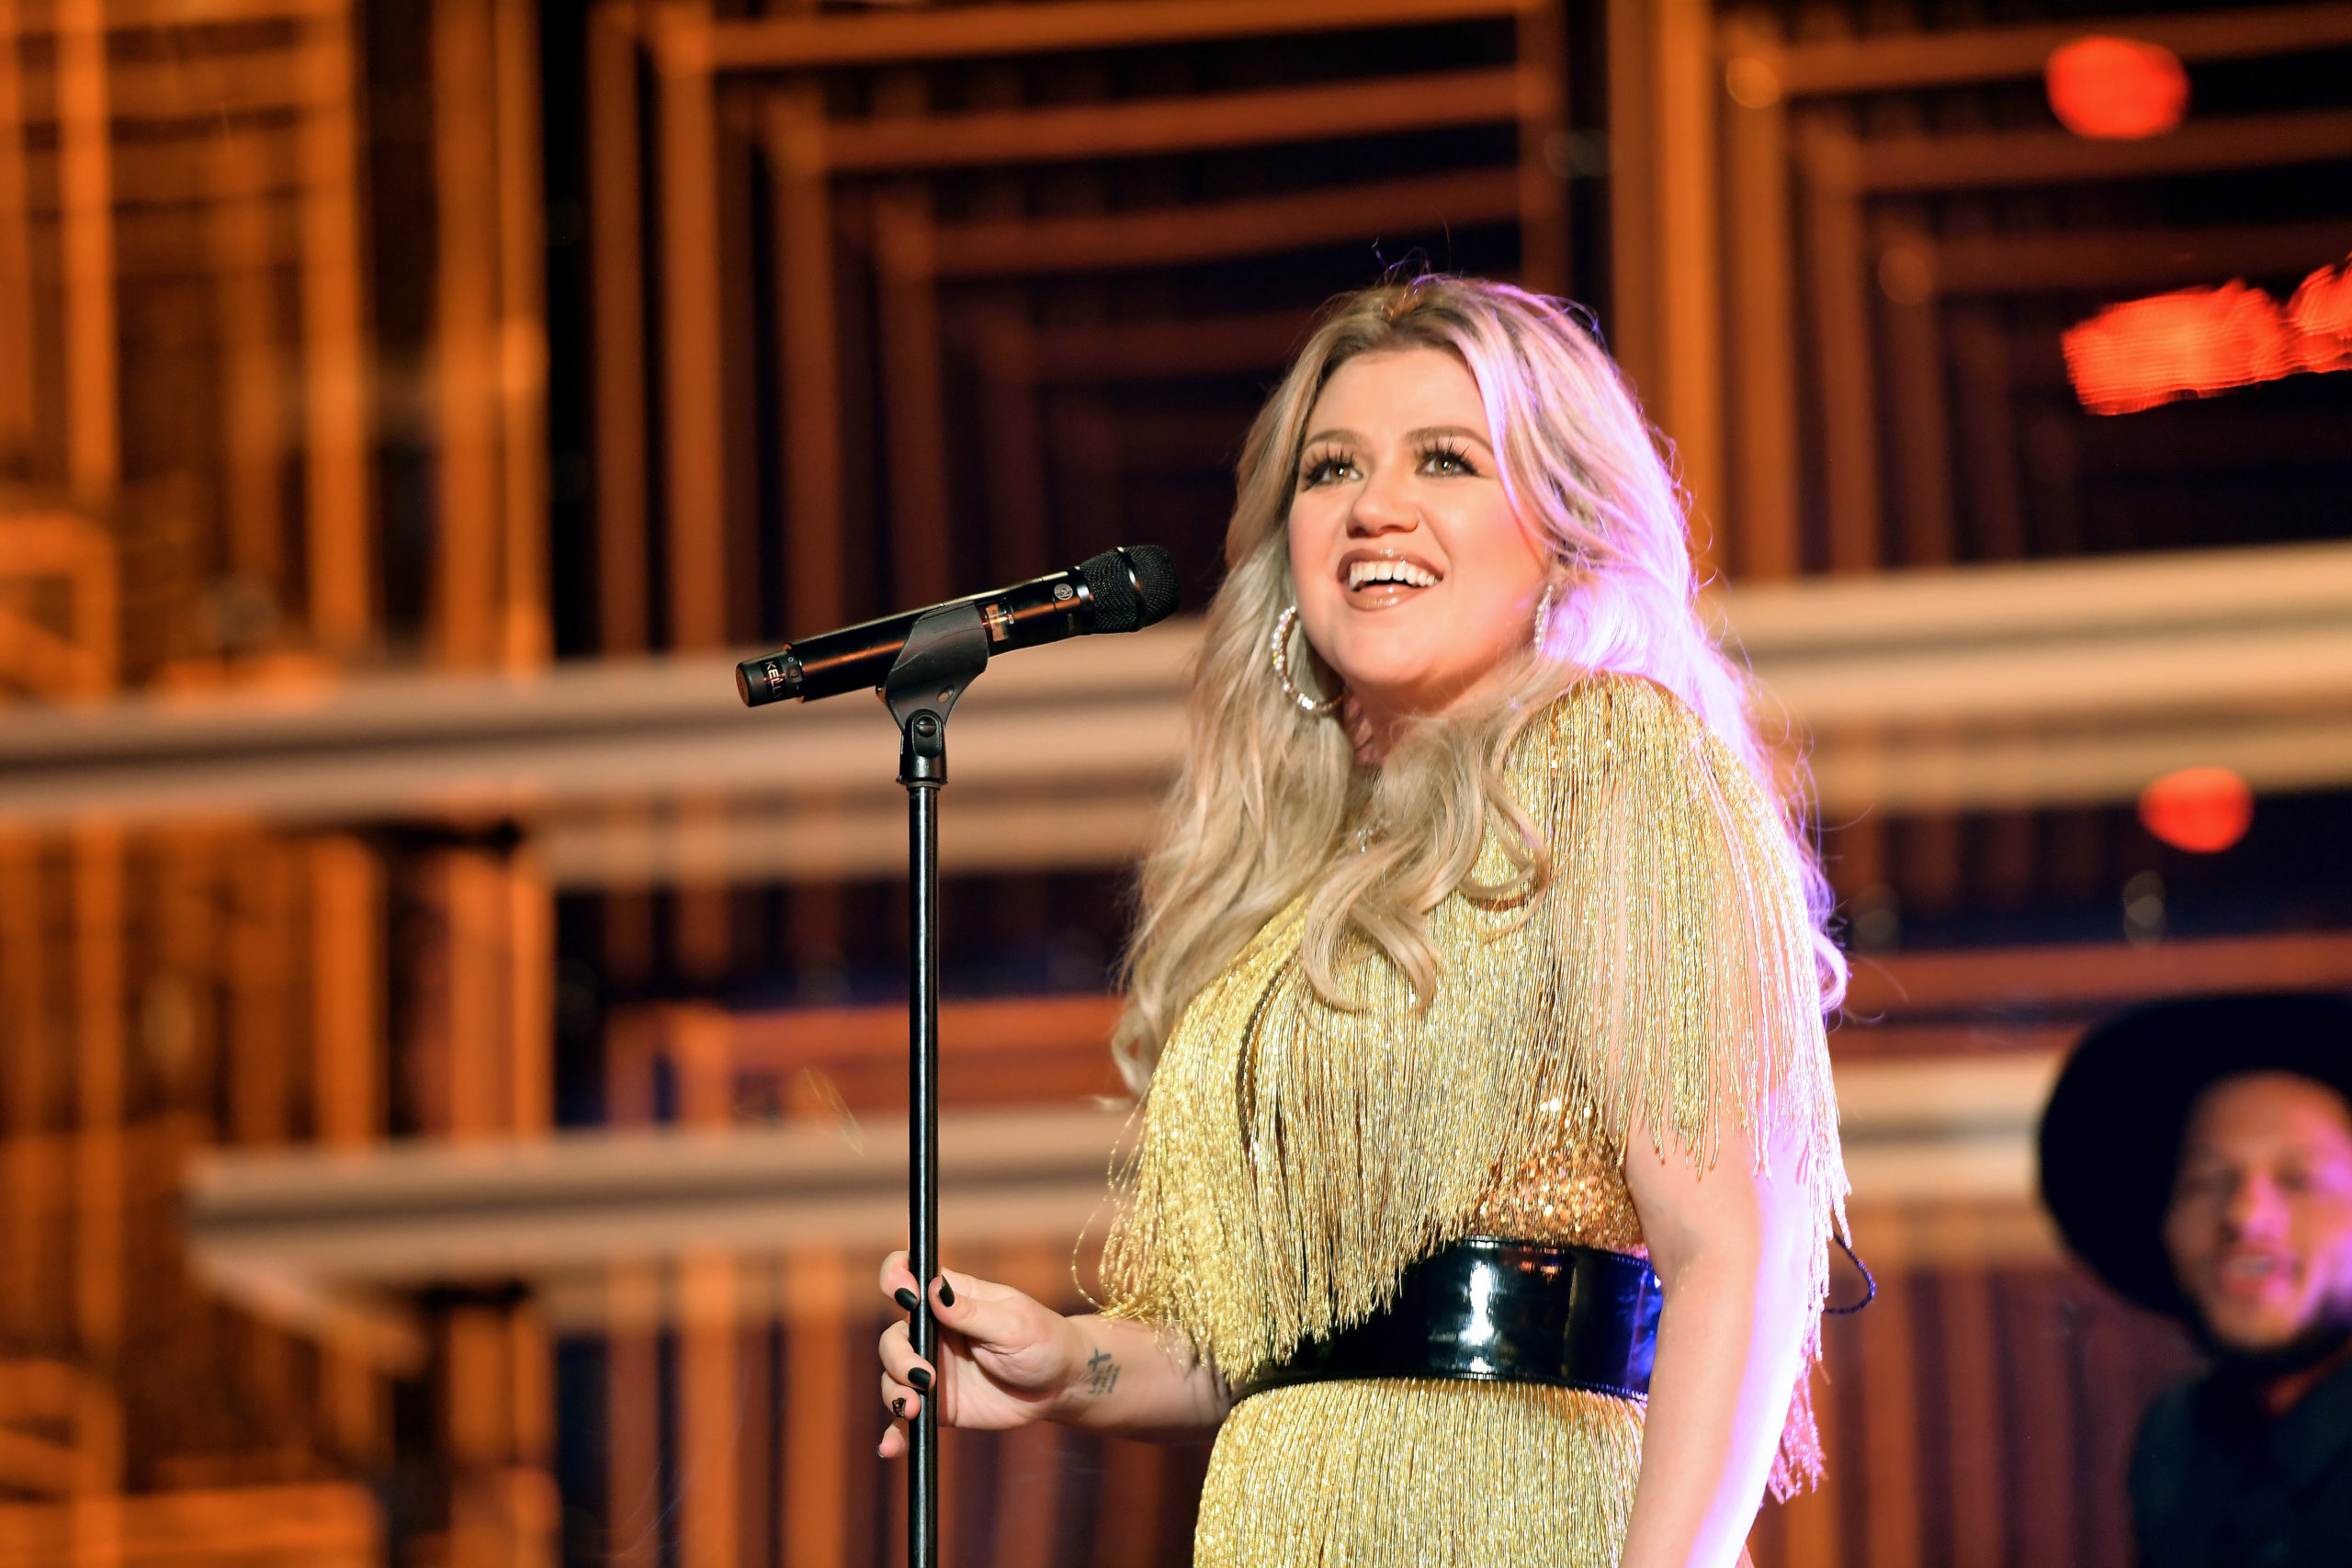 LAS VEGAS, NV - MAY 20: Host Kelly Clarkson performs onstage at the 2018 Billboard Music Awards at MGM Grand Garden Arena on May 20, 2018 in Las Vegas, Nevada. (Photo by Matt Winkelmeyer/Getty Images for dcp)